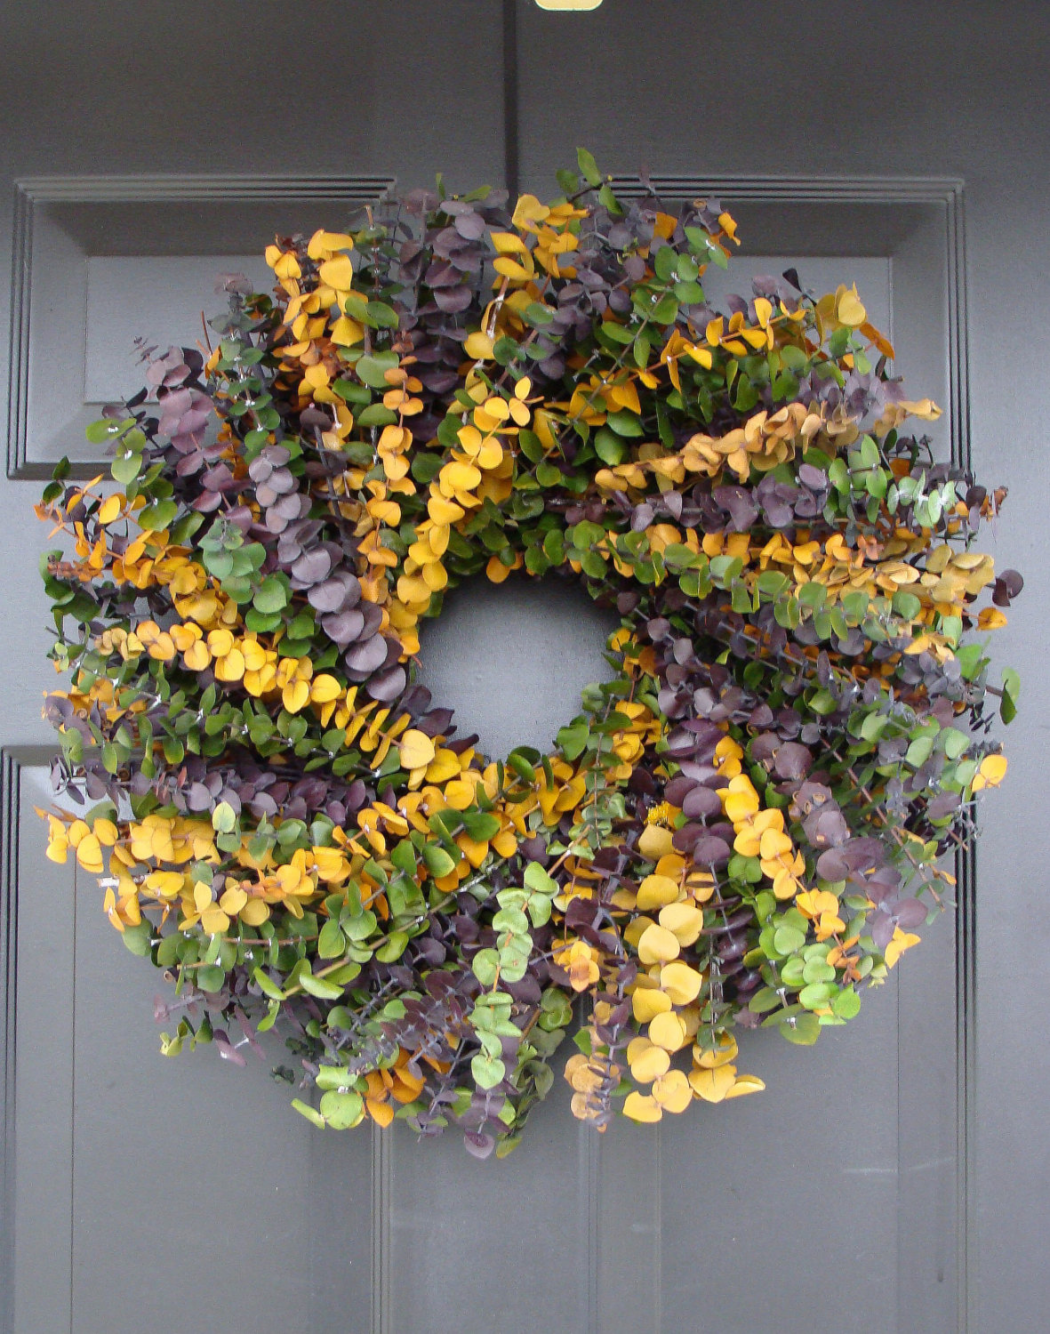 word-image-11 Fat Tuesday is Coming! 11 Classy Mardis Gras Wreaths for Your Front Door